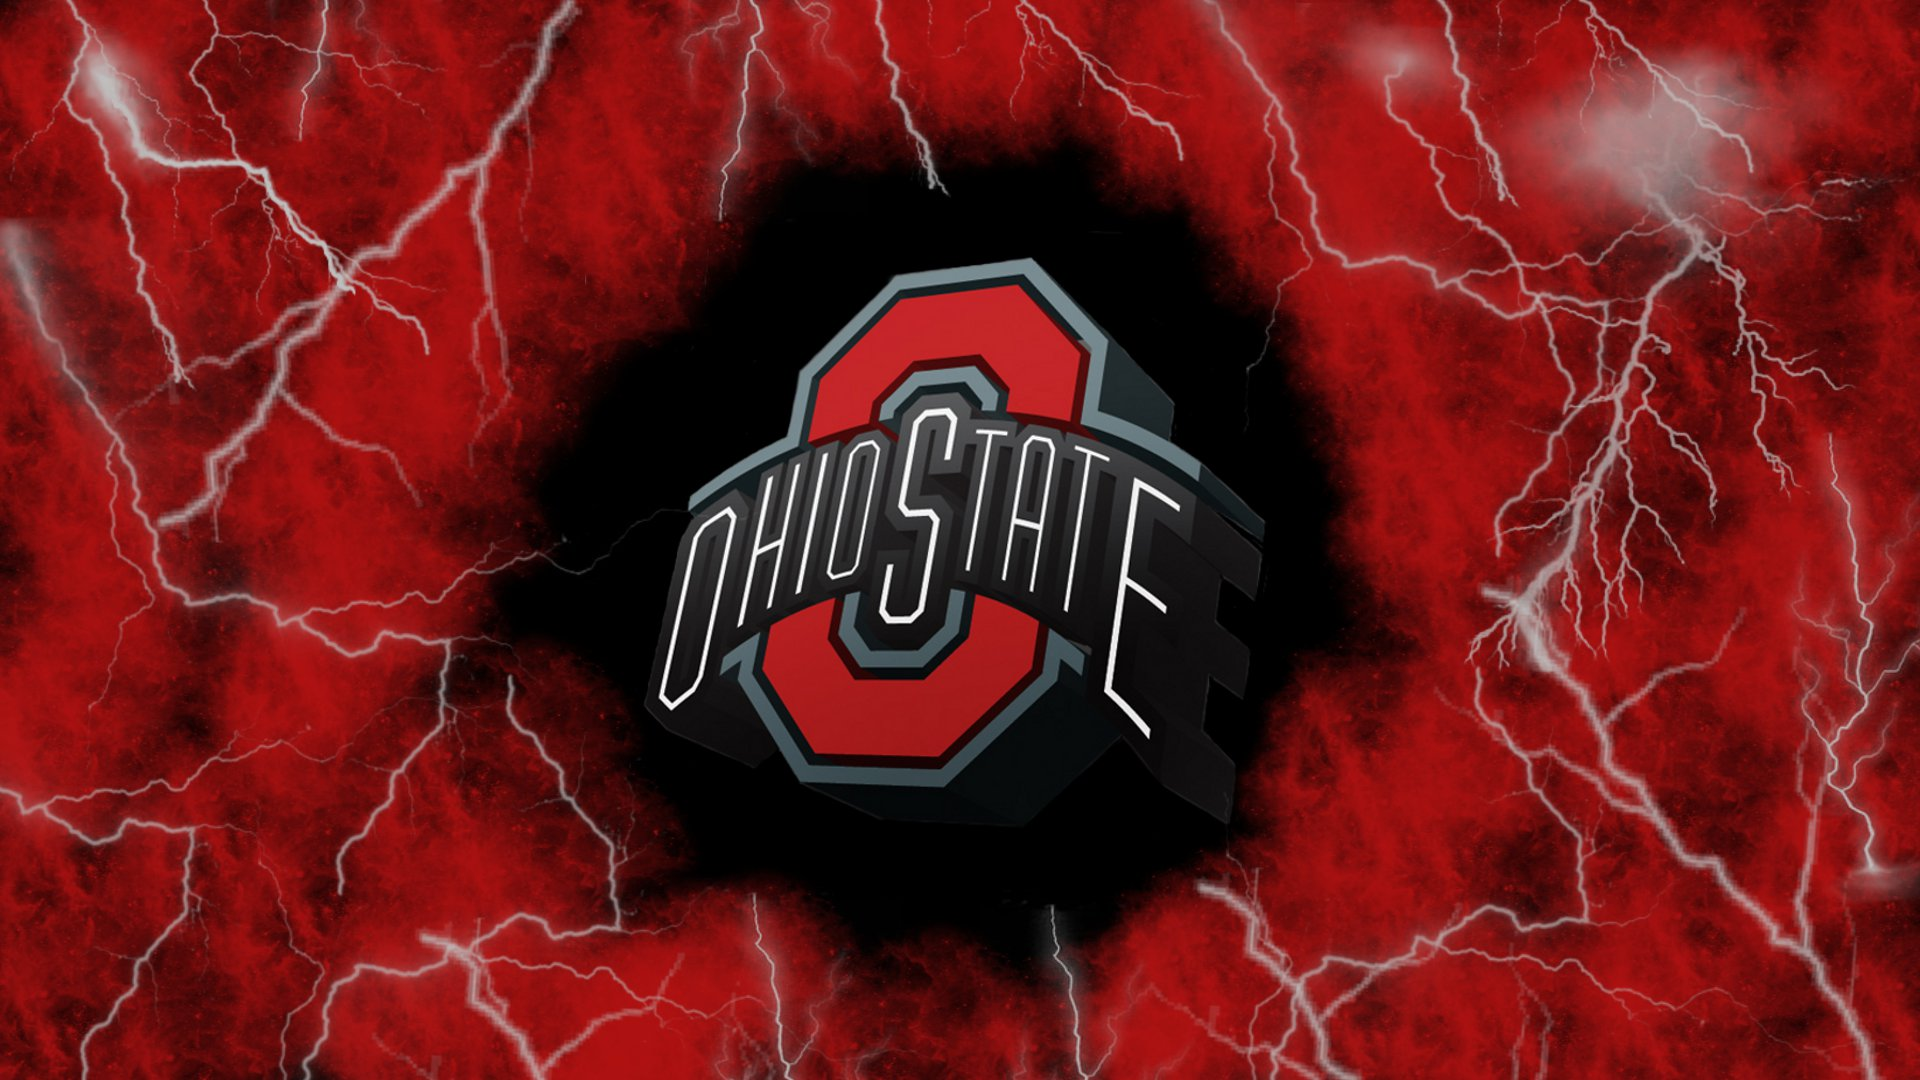 Ohio State Downloads for Every Buckeyes Fan | Themes, Wallpapers